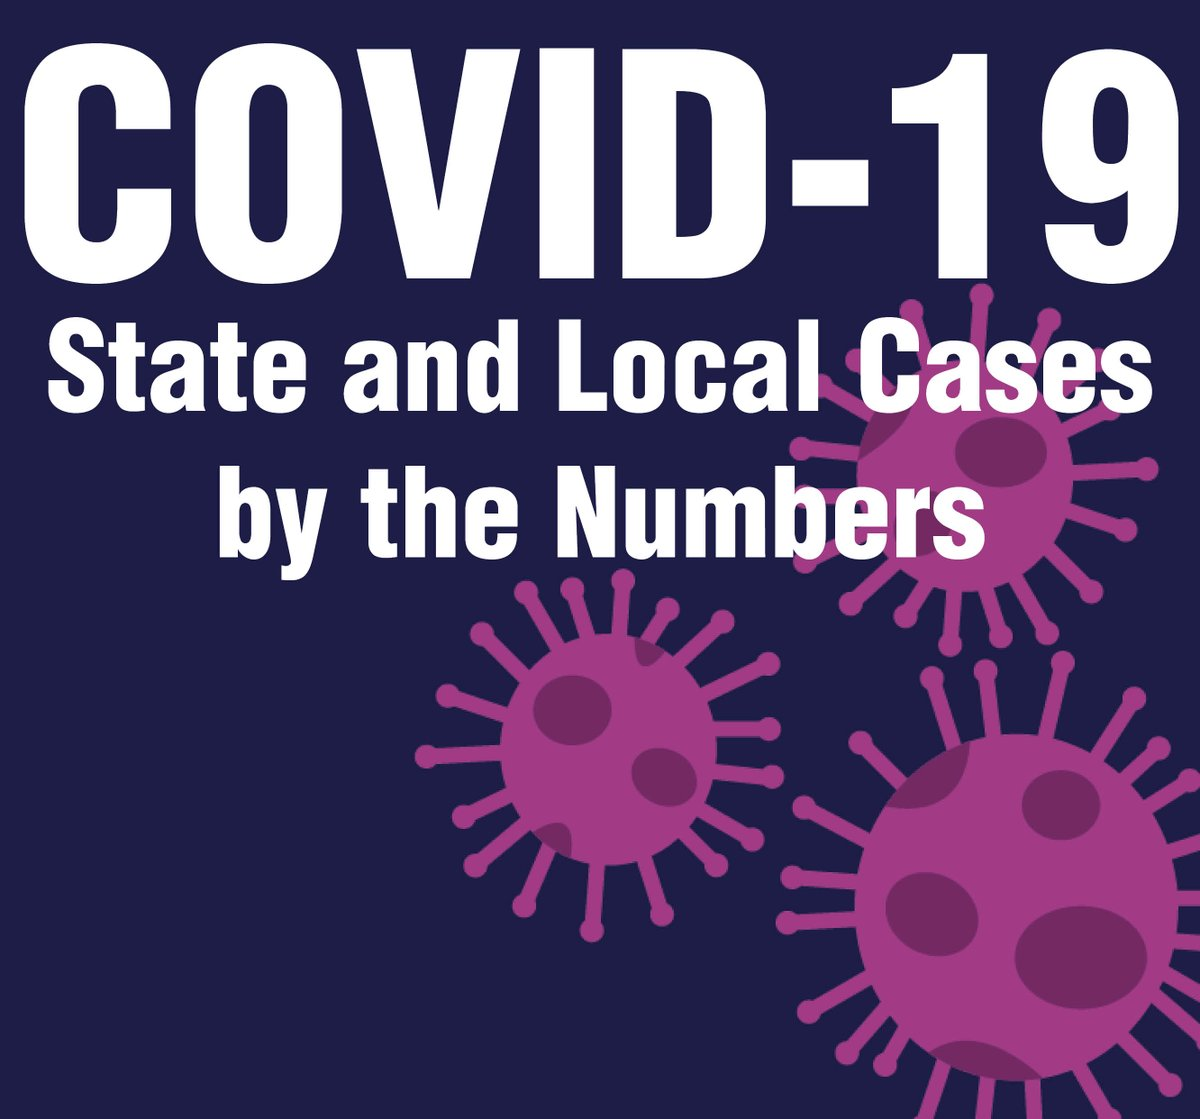 Coronavirus is still in our community and we must all continue the fight against COVID-19. To view the dashboard on the city's website, visit . To view the full cases by the numbers report, visit .